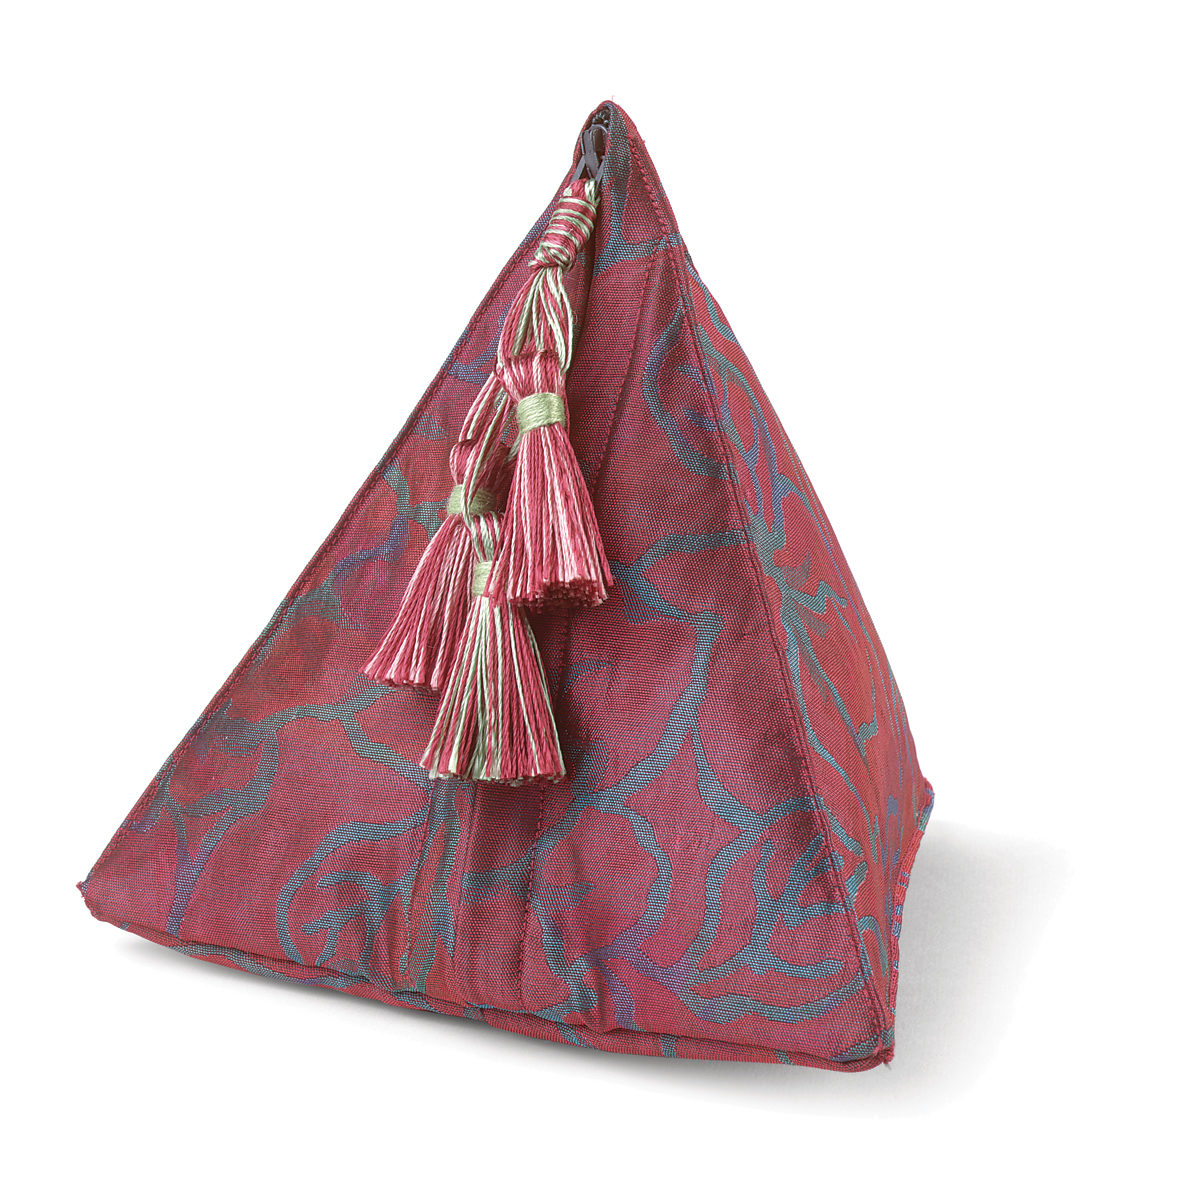 Quick to Make: Sew Fabric Pyramid Pouches - Threads